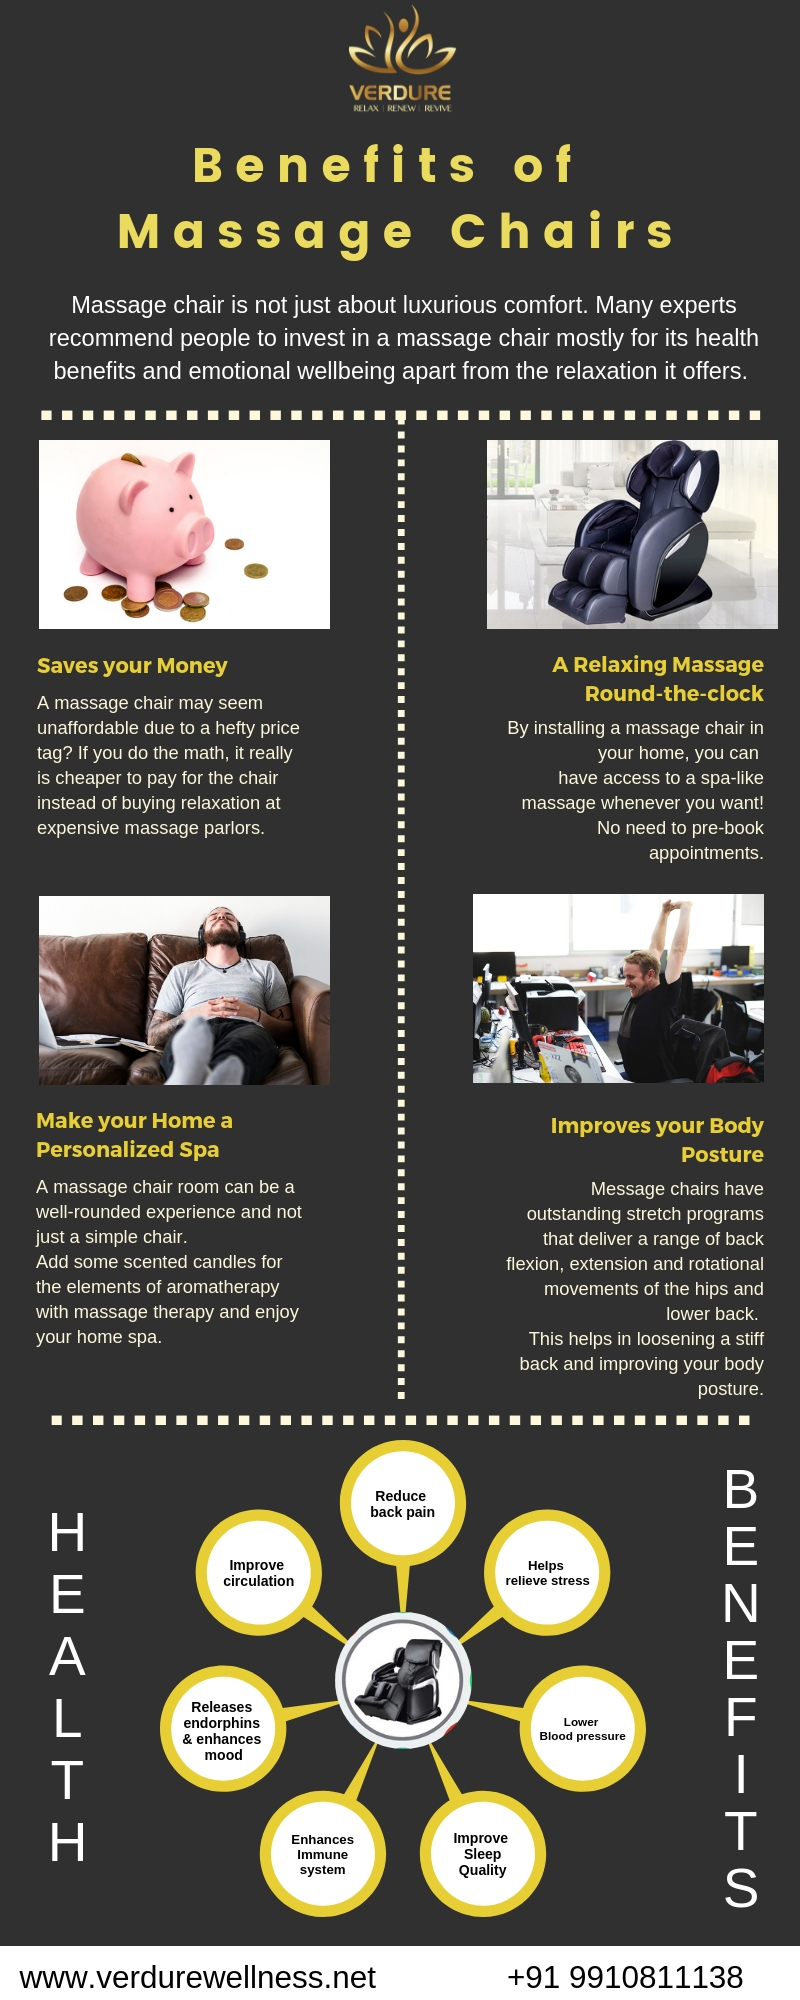 Benefits of Massage Chairs